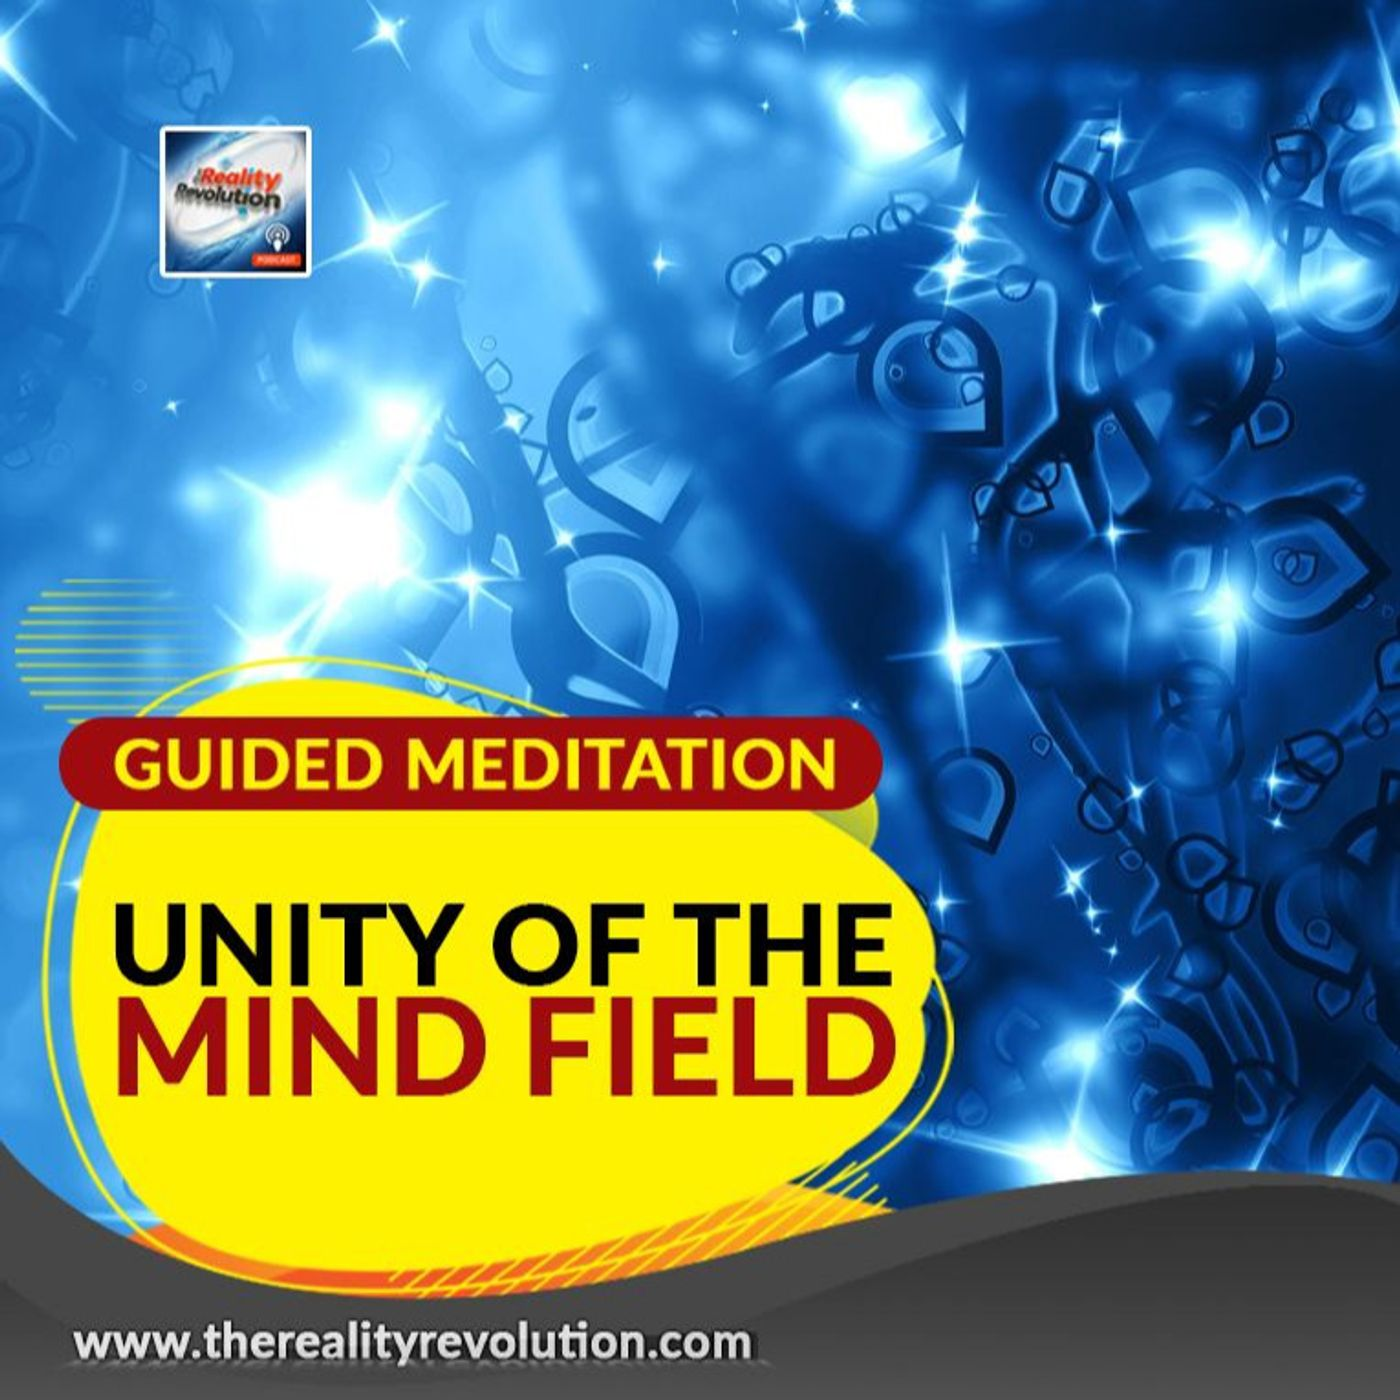 Guided Meditation Unity Of The Mind Field